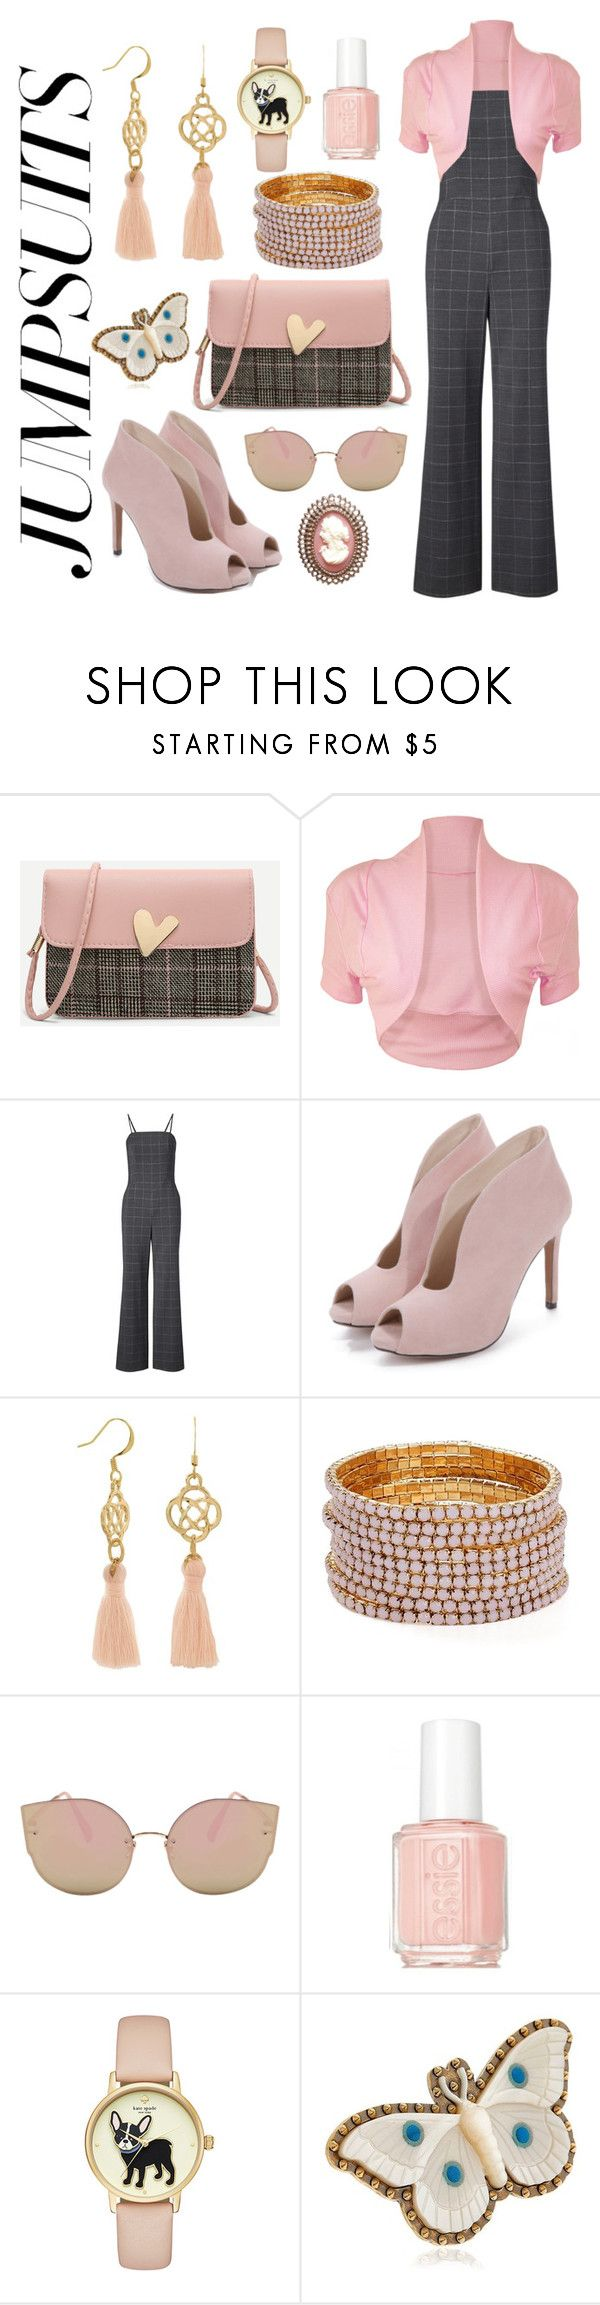 """""""Rose gold and plaid"""" by neonmoonbeam ❤ liked on Polyvore featuring WearAll, Aqua, Essie, Gucci and jumpsuits"""